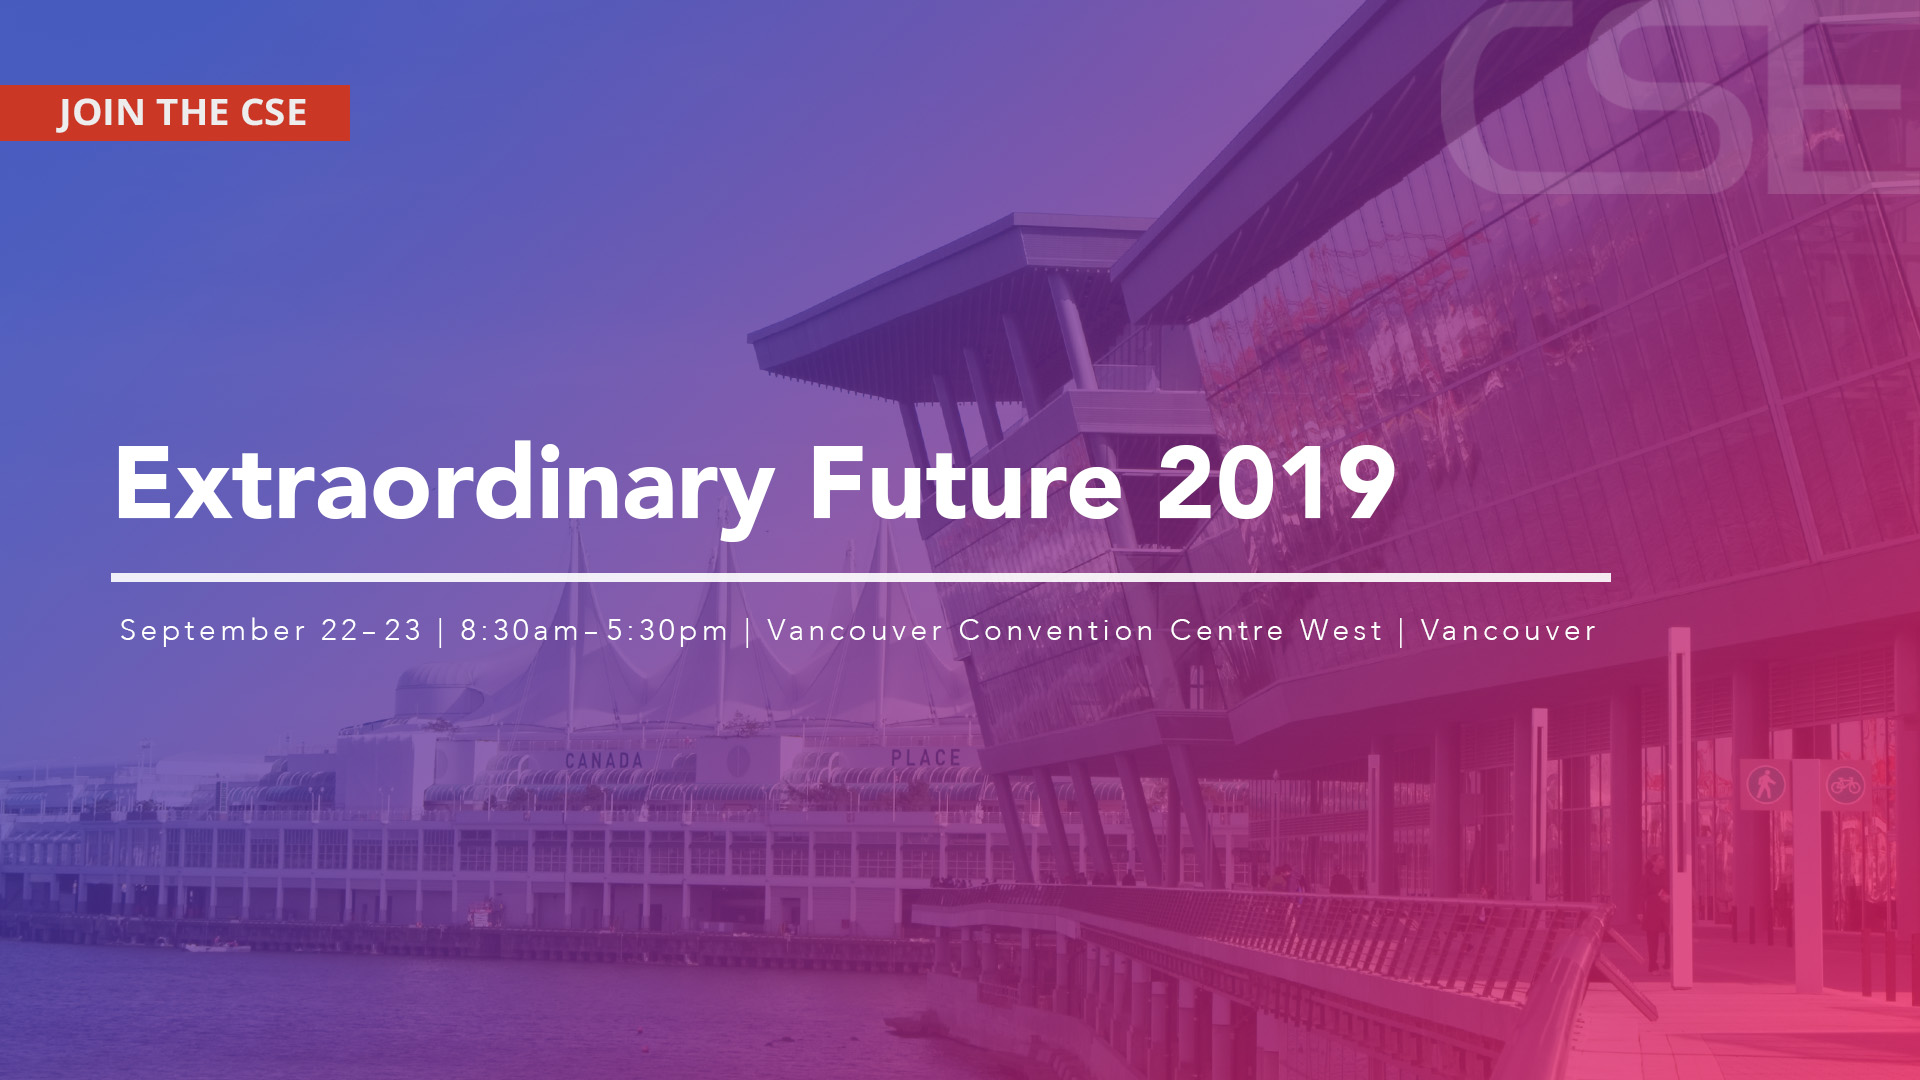 09-22_Extraordinary_Future_2019_Facebook